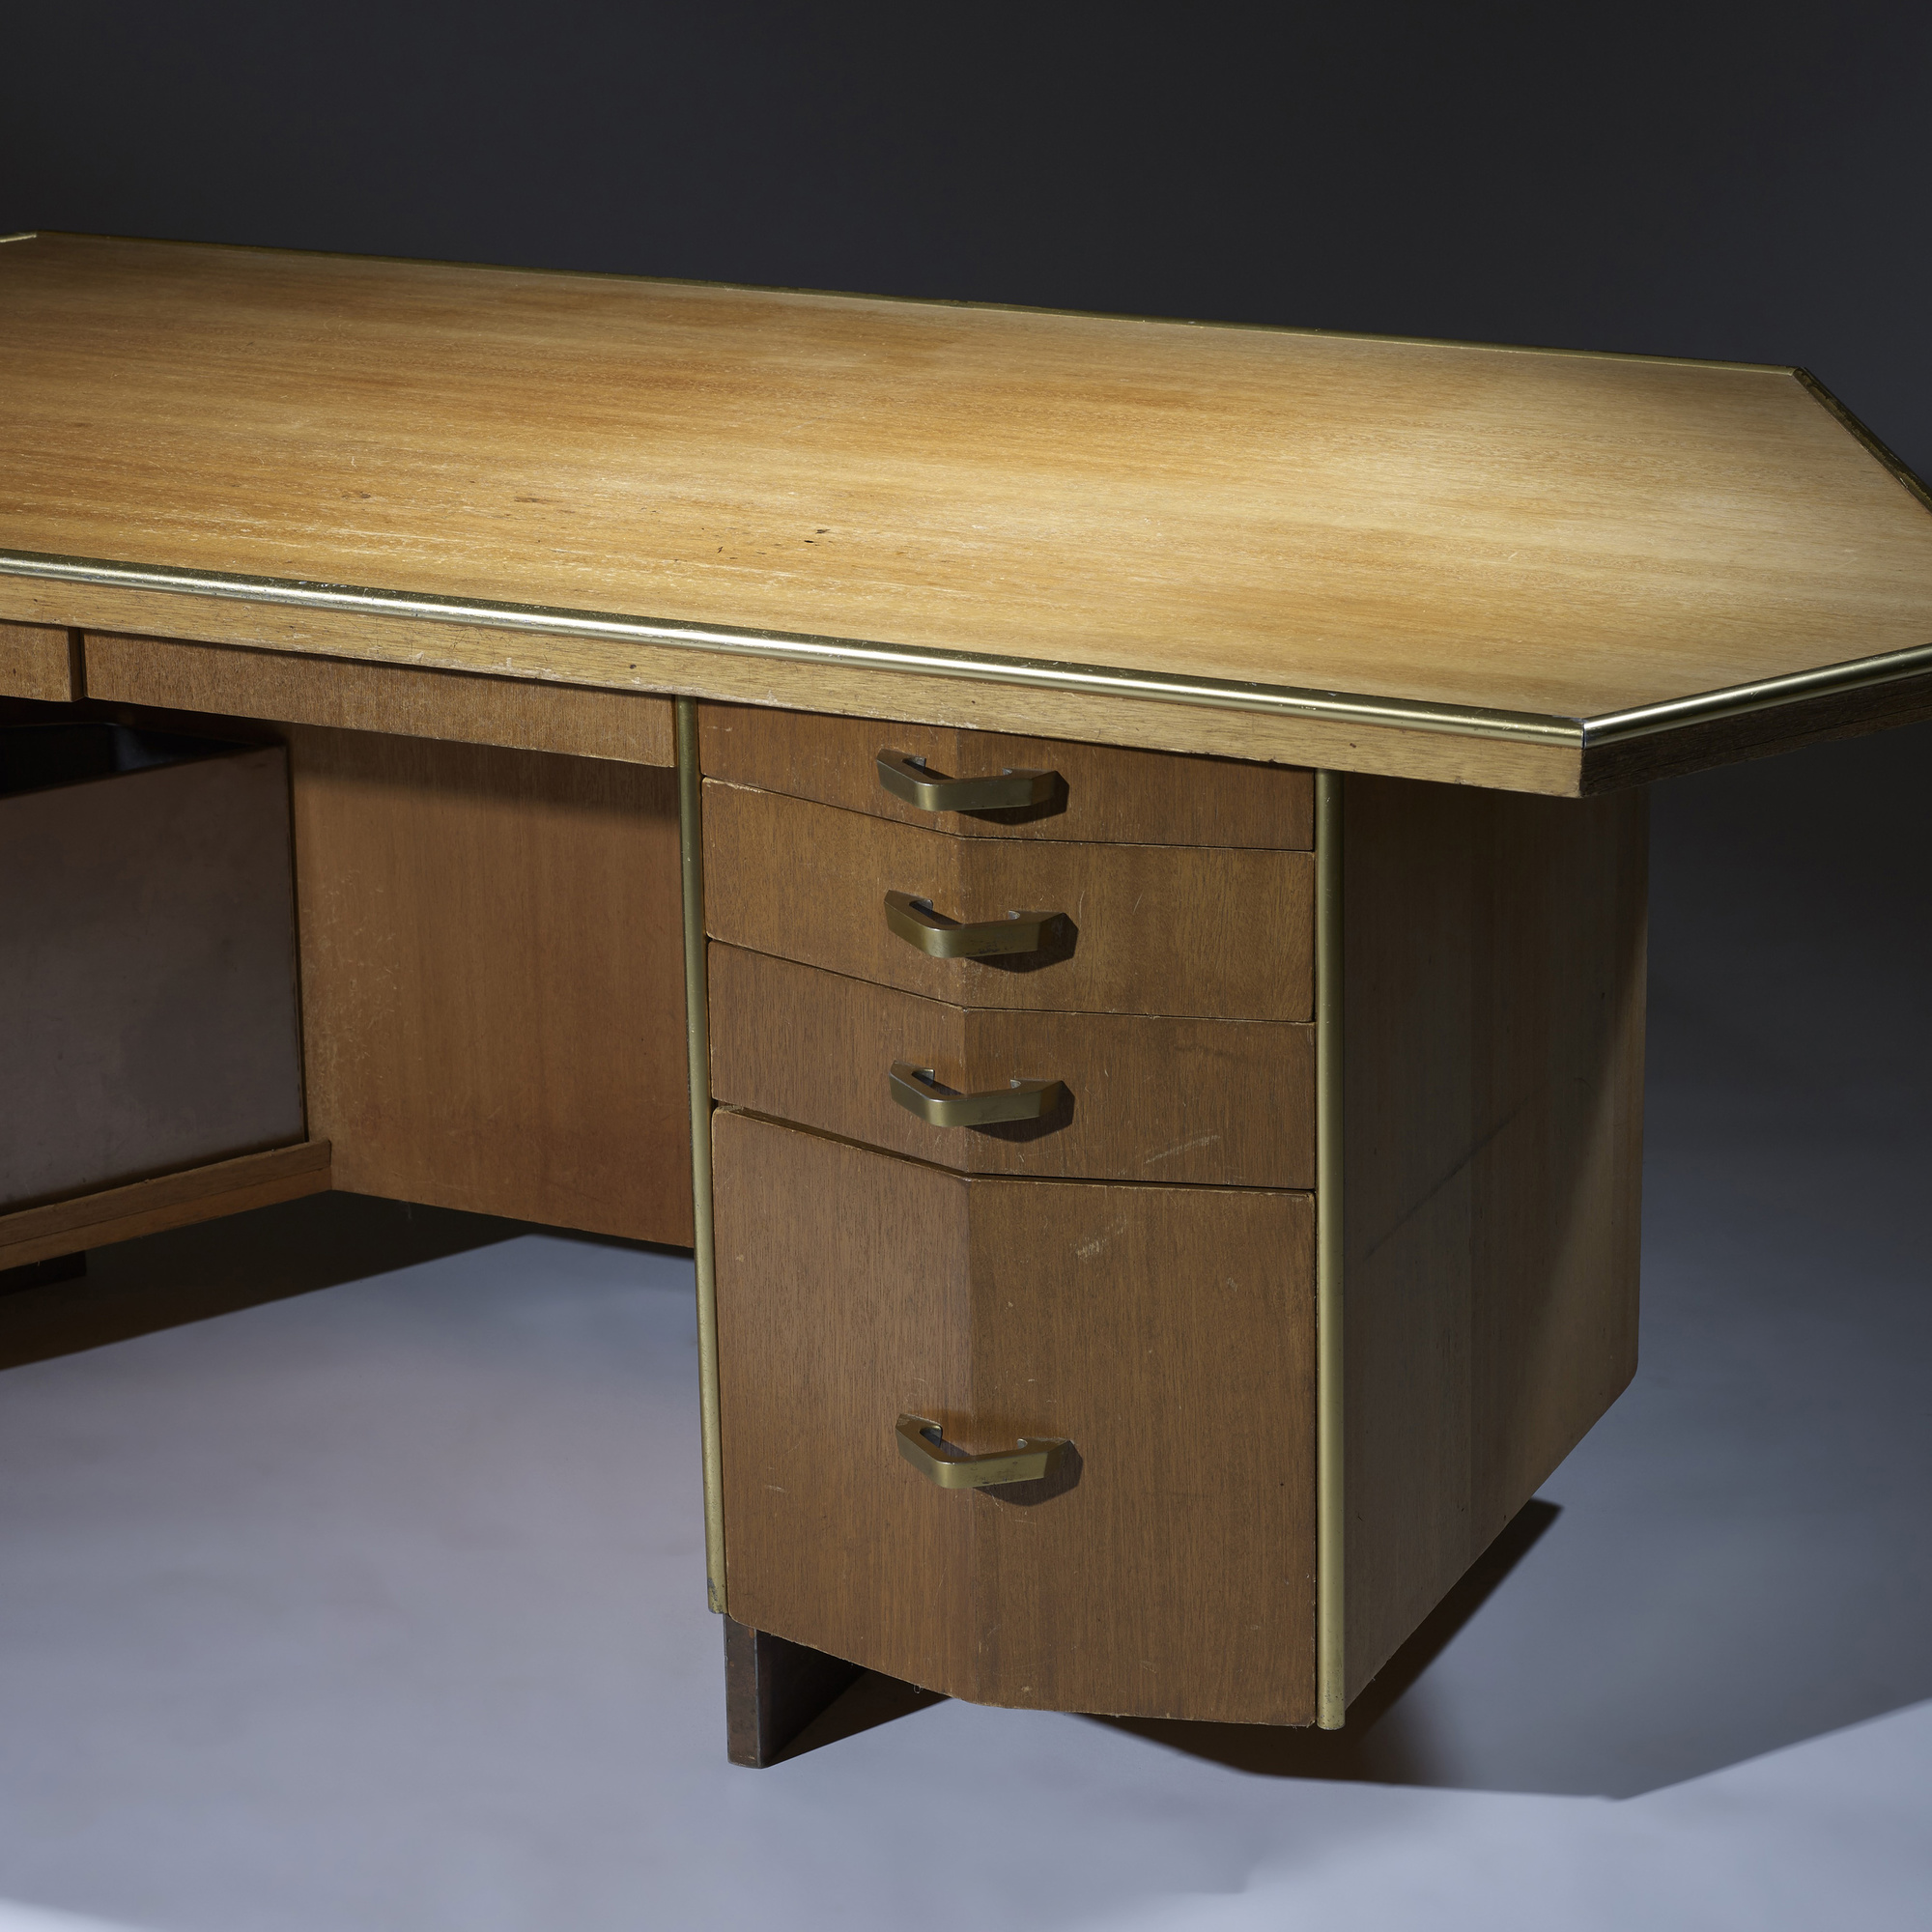 255: Frank Lloyd Wright / desk with wastepaper basket from Price Tower, Bartlesville, Oklahoma (3 of 4)